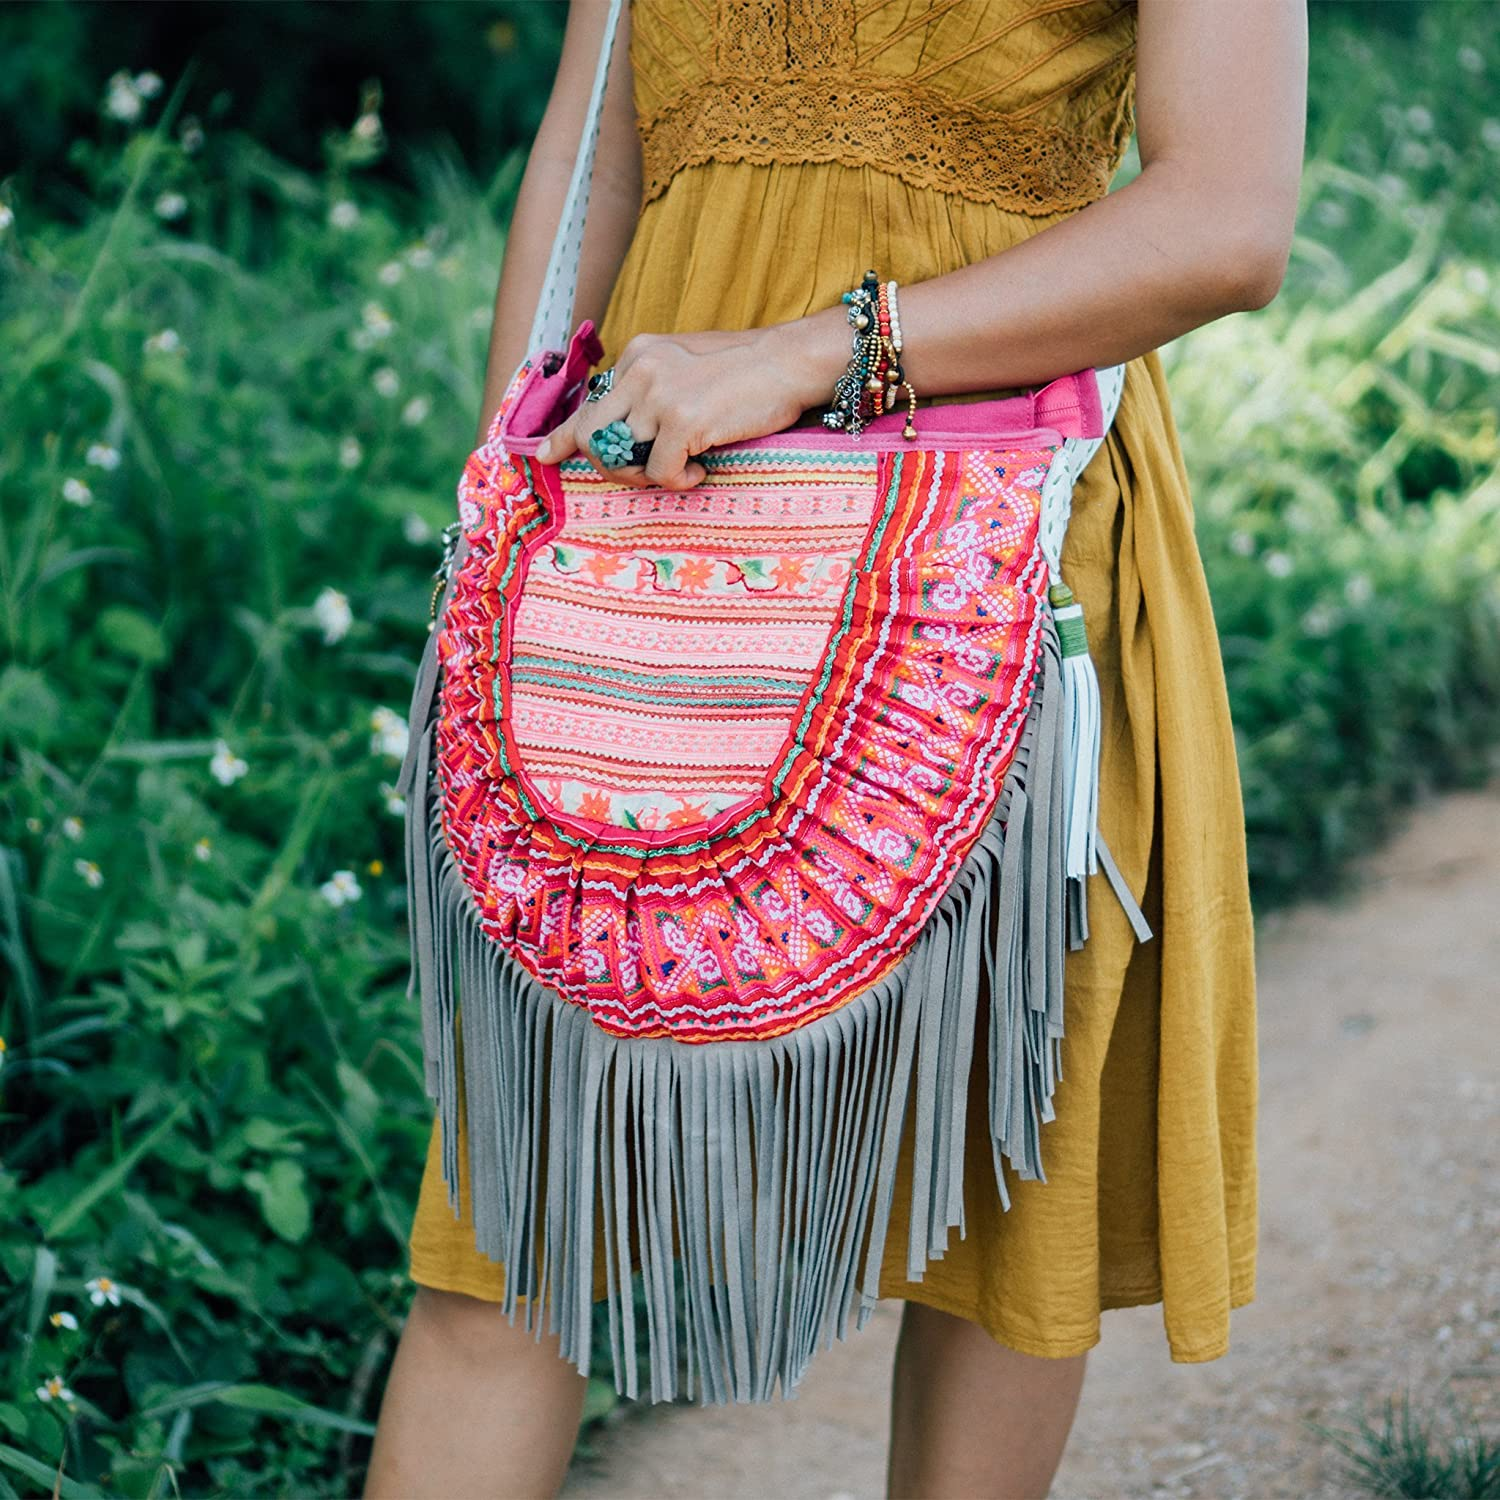 Amazon.com  Changnoi Bohemian Leather Fringed Purse with Vintage Hmong Hill  Tribe Embroidered for Womens in Pink from Thailand f18548fc9e879